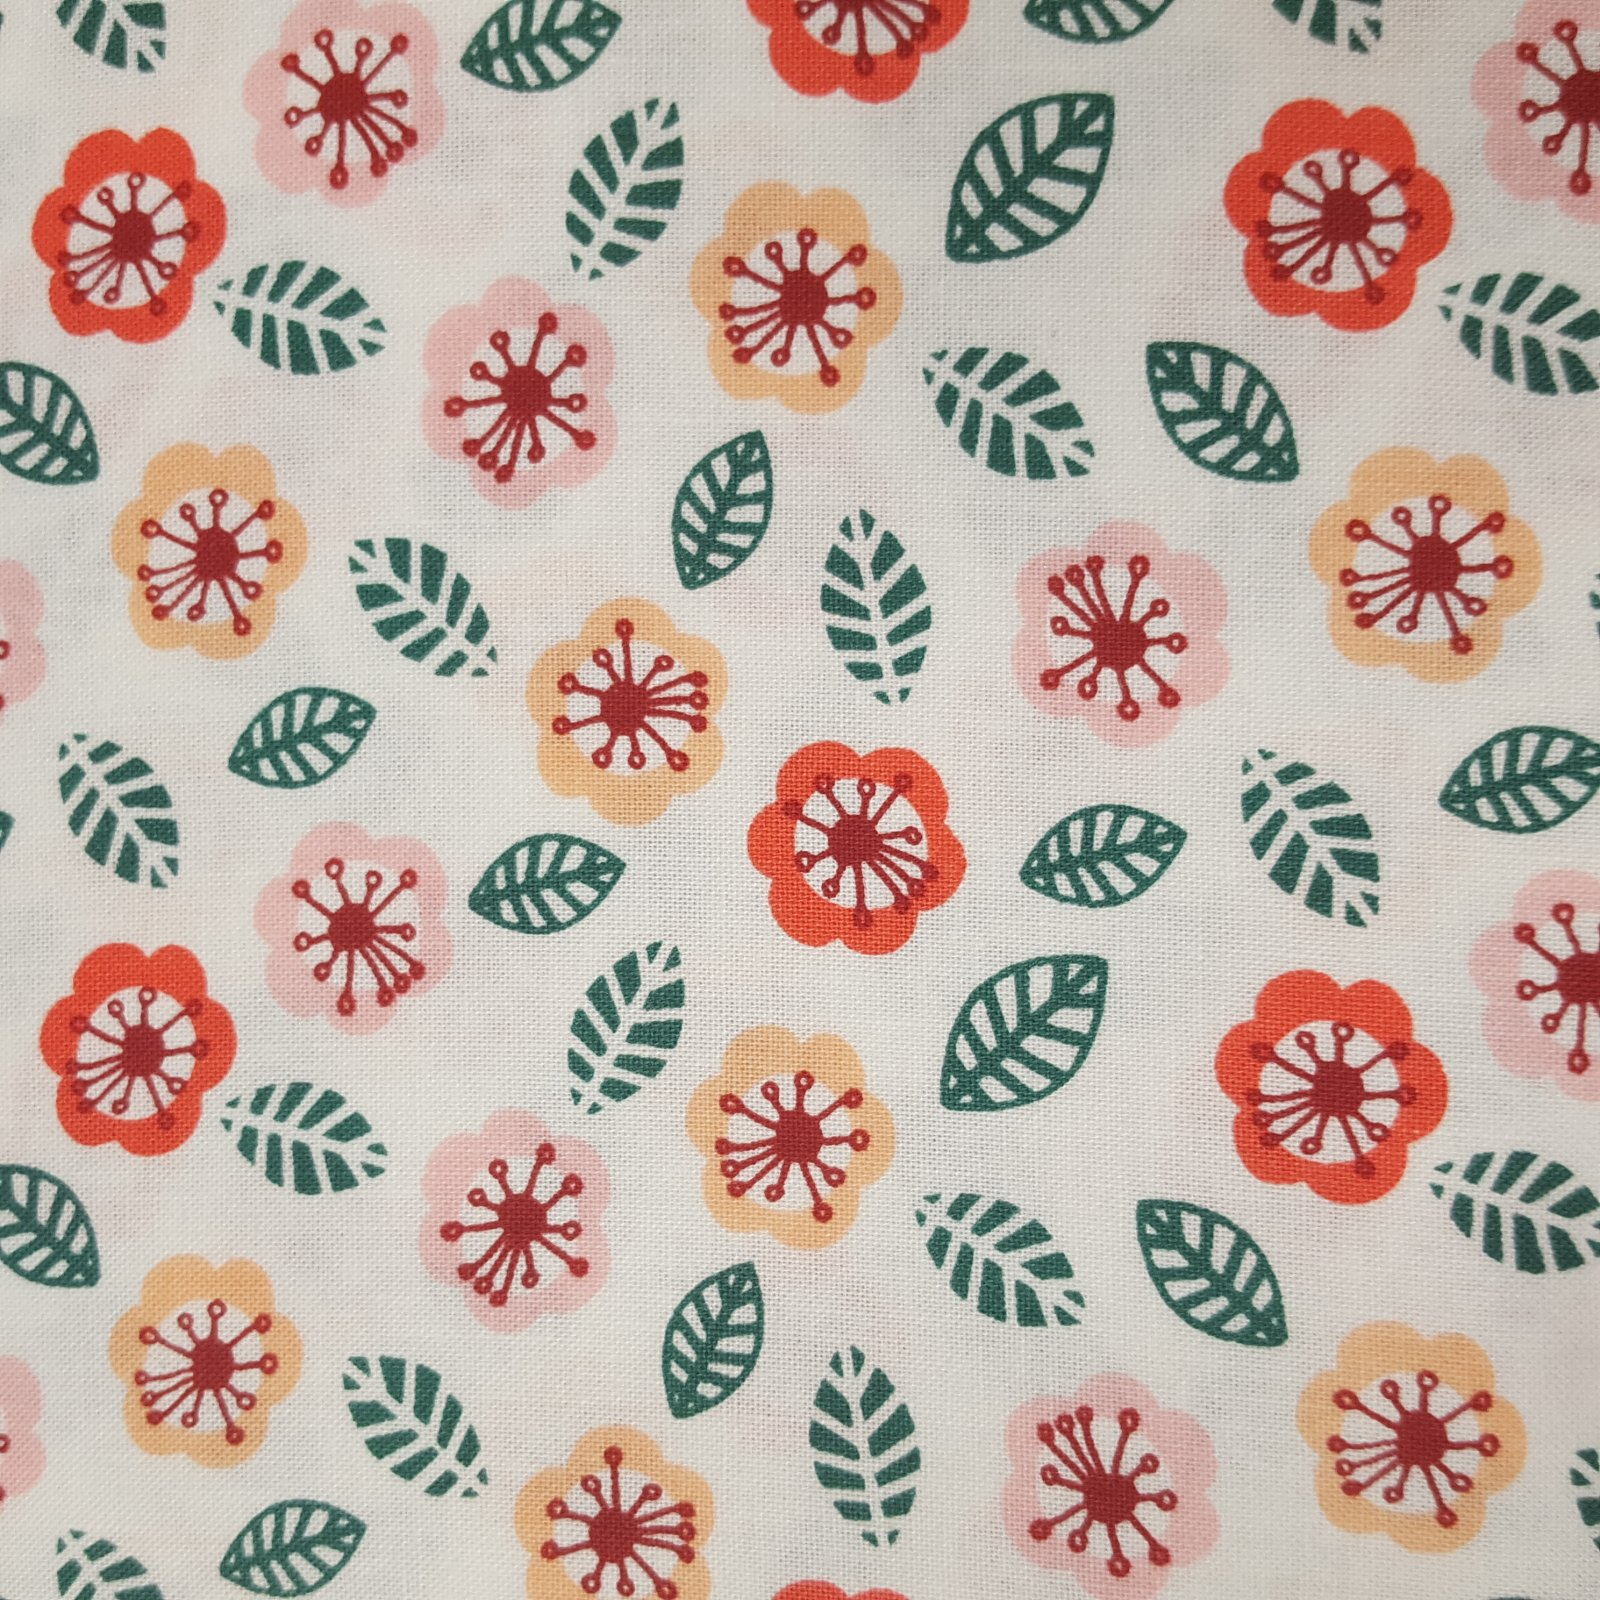 Printed Cotton Flowers - 9140504 02